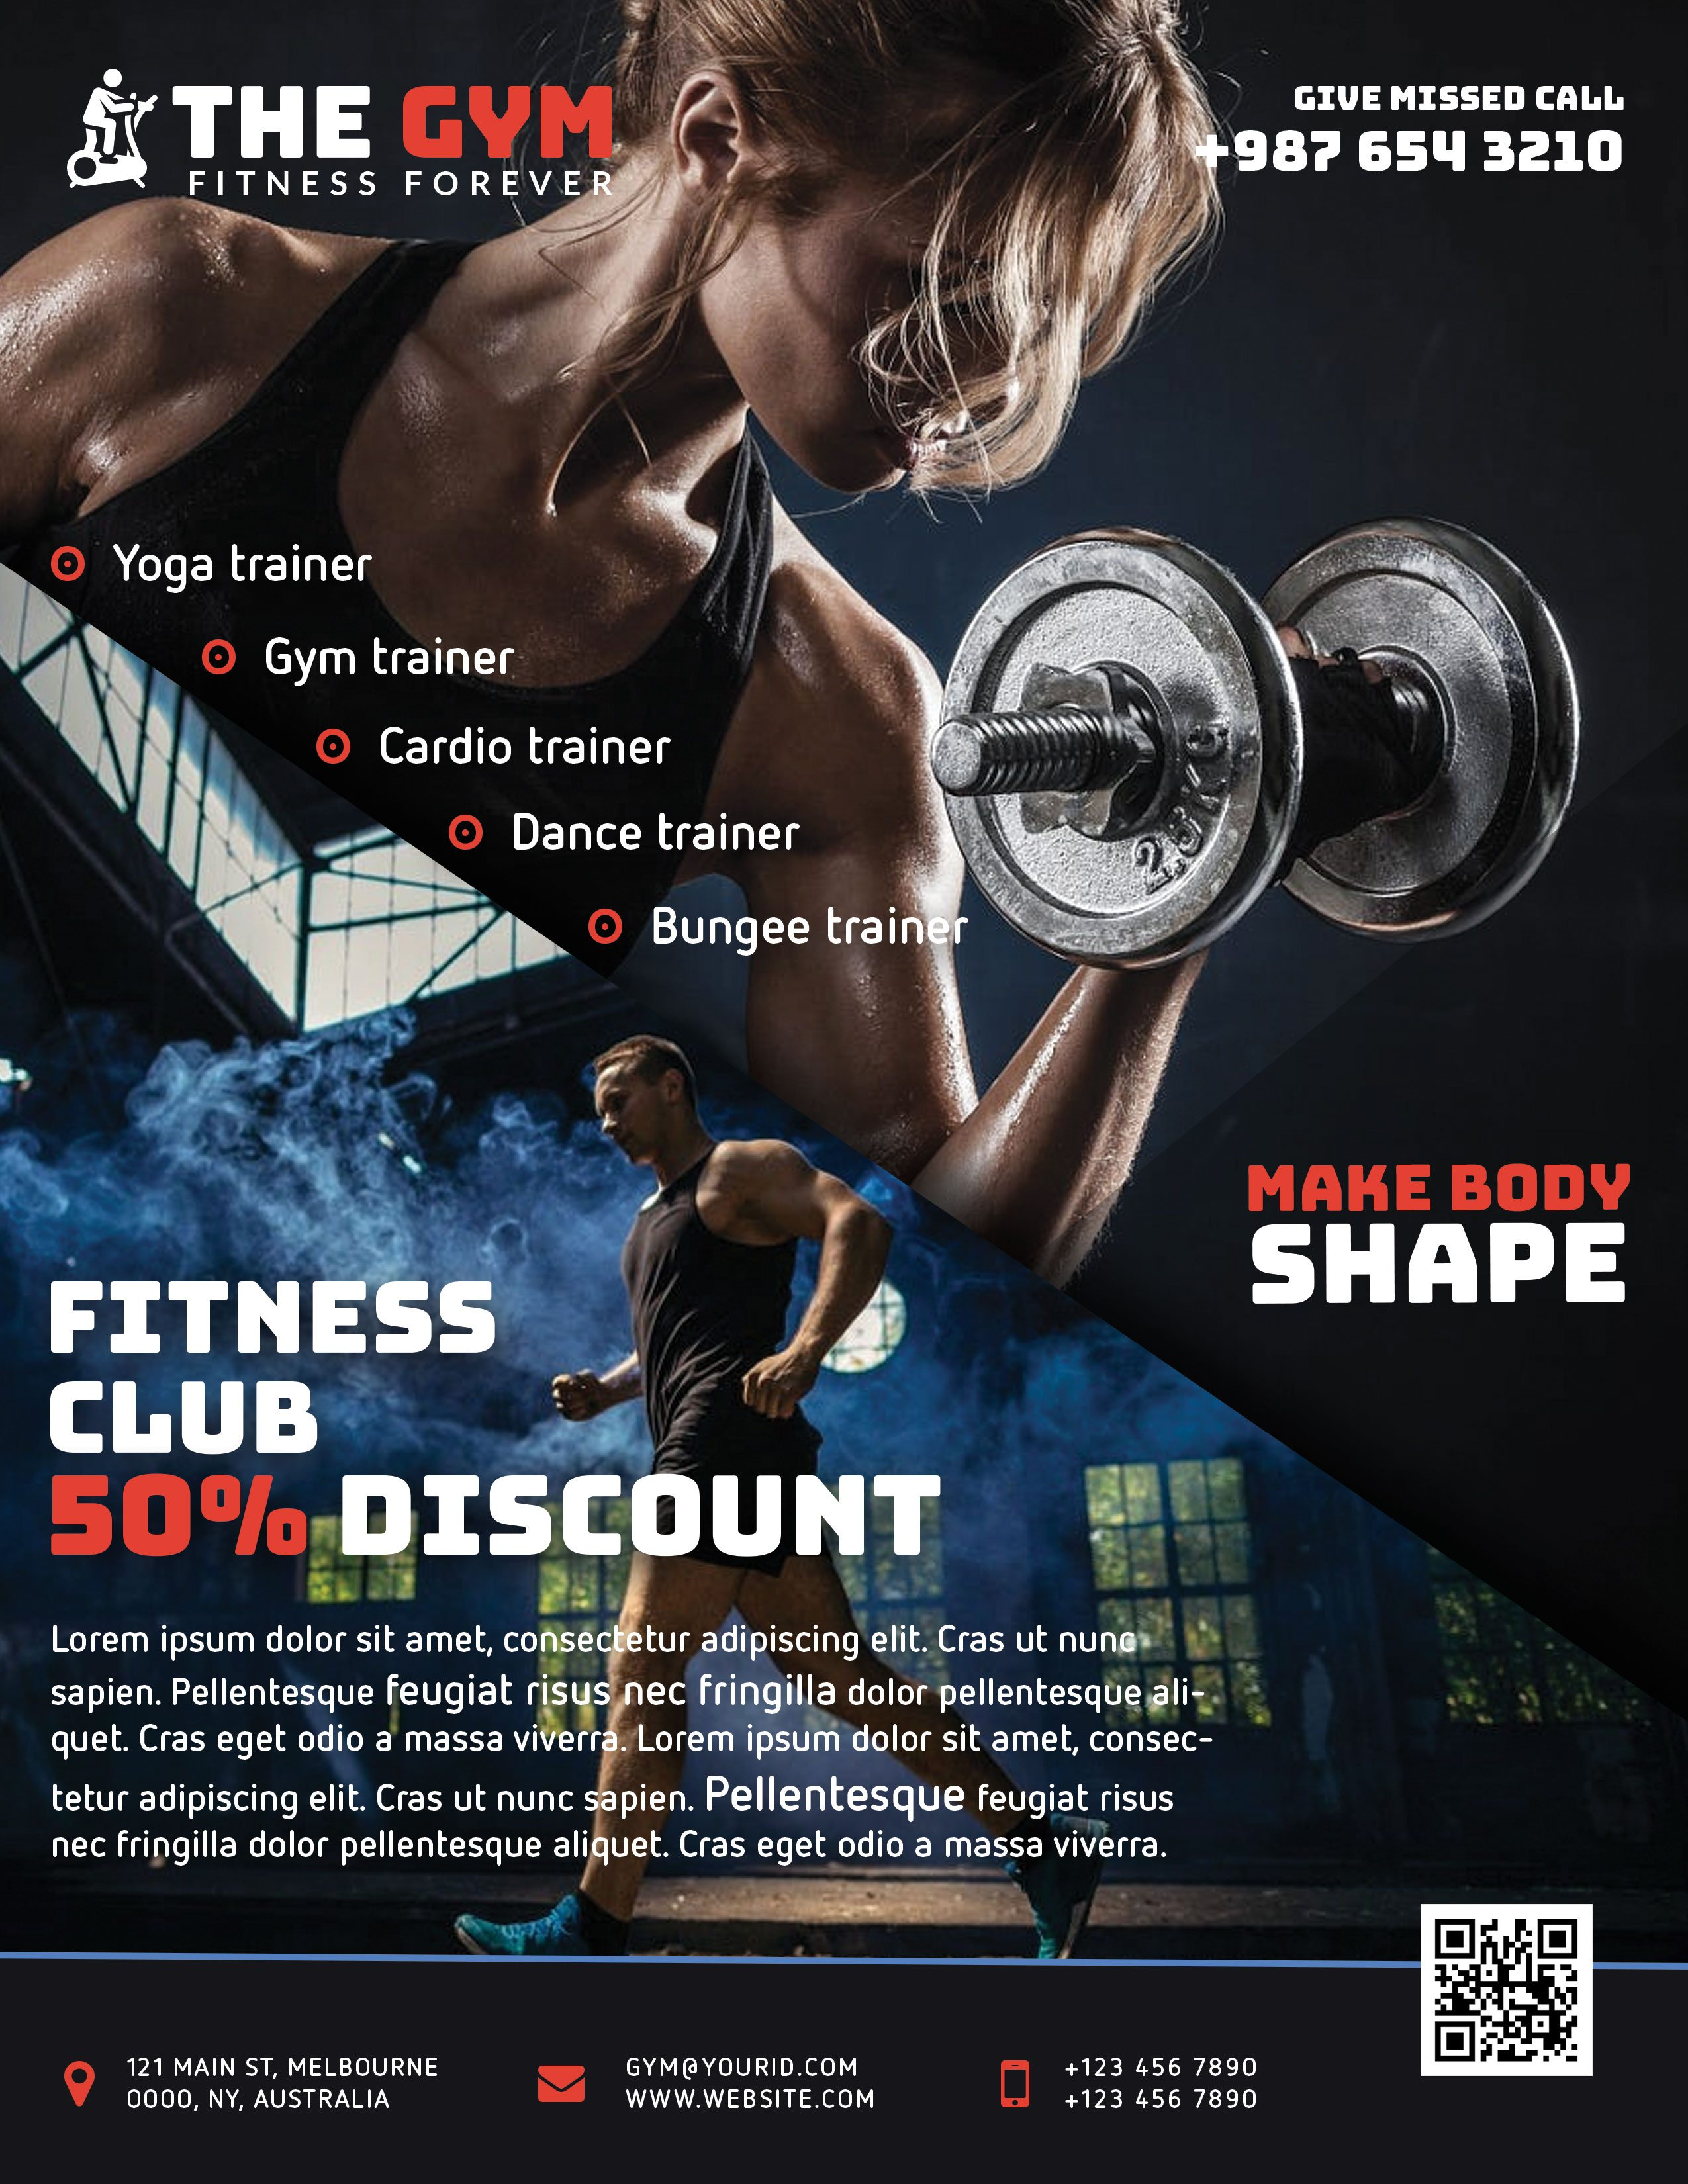 Style 2 The Gym Fitness Flyer Freebie PSD Cyan